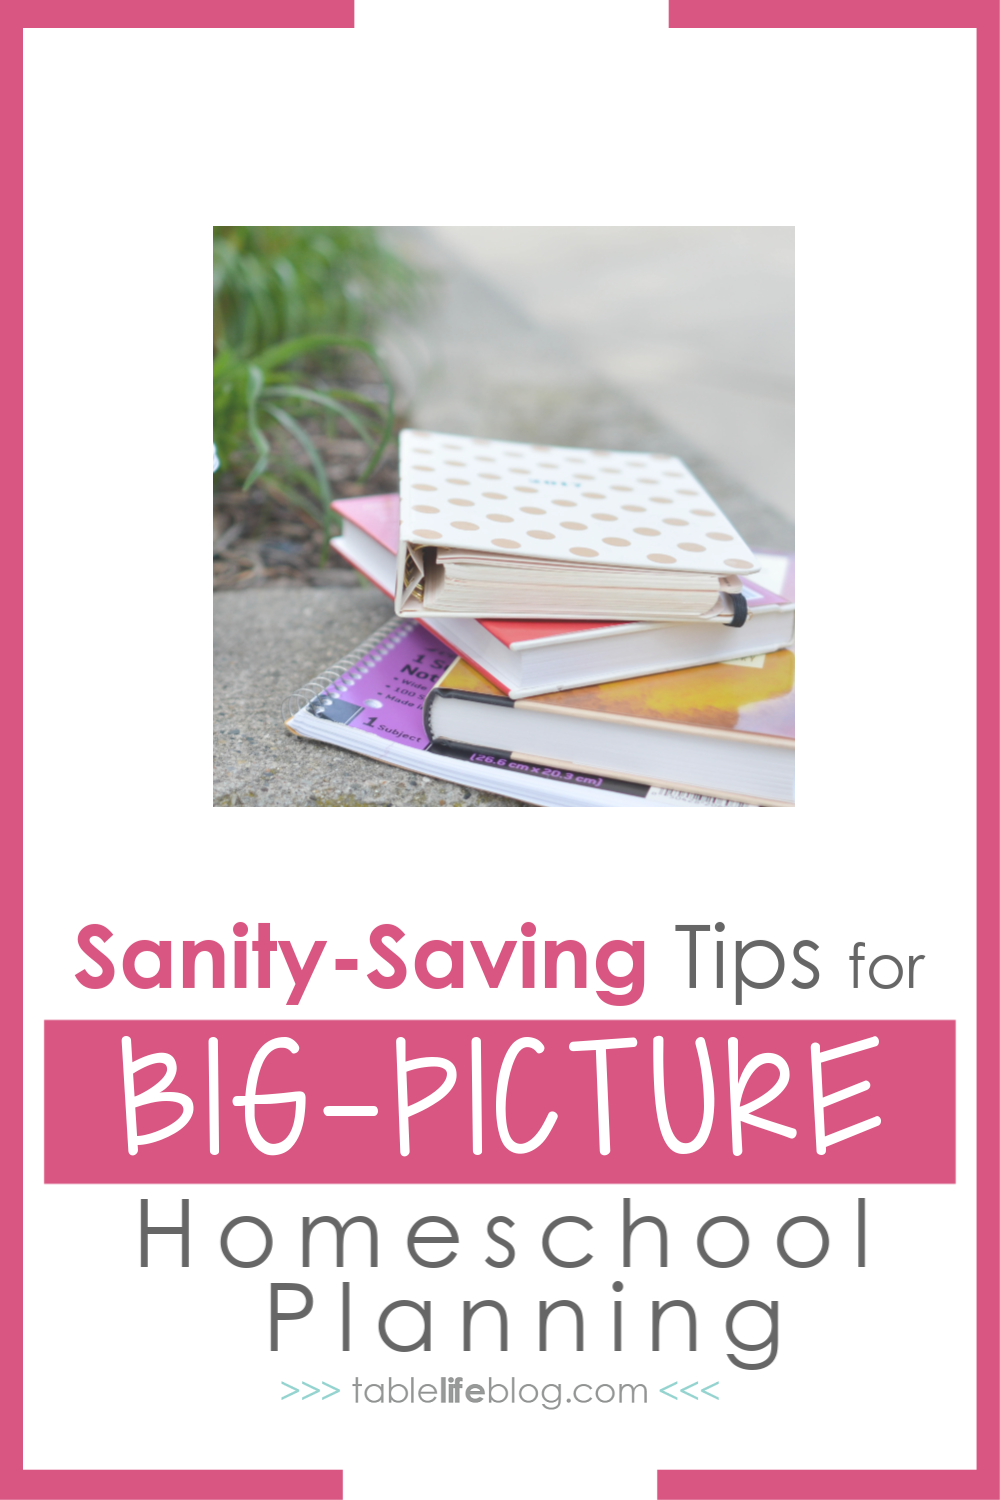 Simple and Sanity-Saving Tips for Big-Picture Homeschool Planning